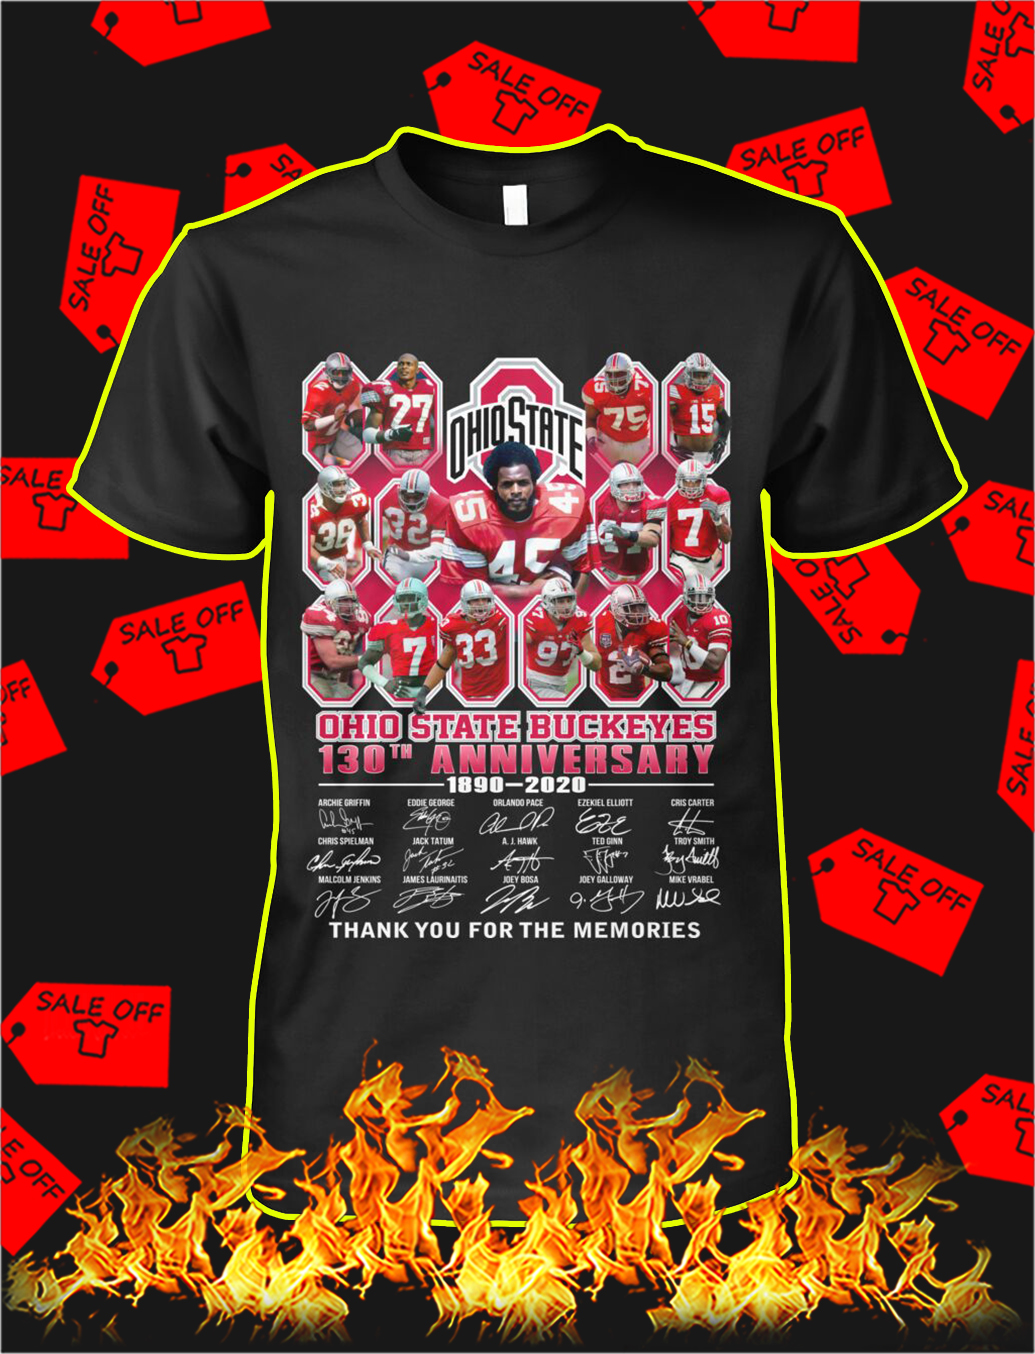 Ohio state buckeyes 130th anniversary thank you for the memories shirt